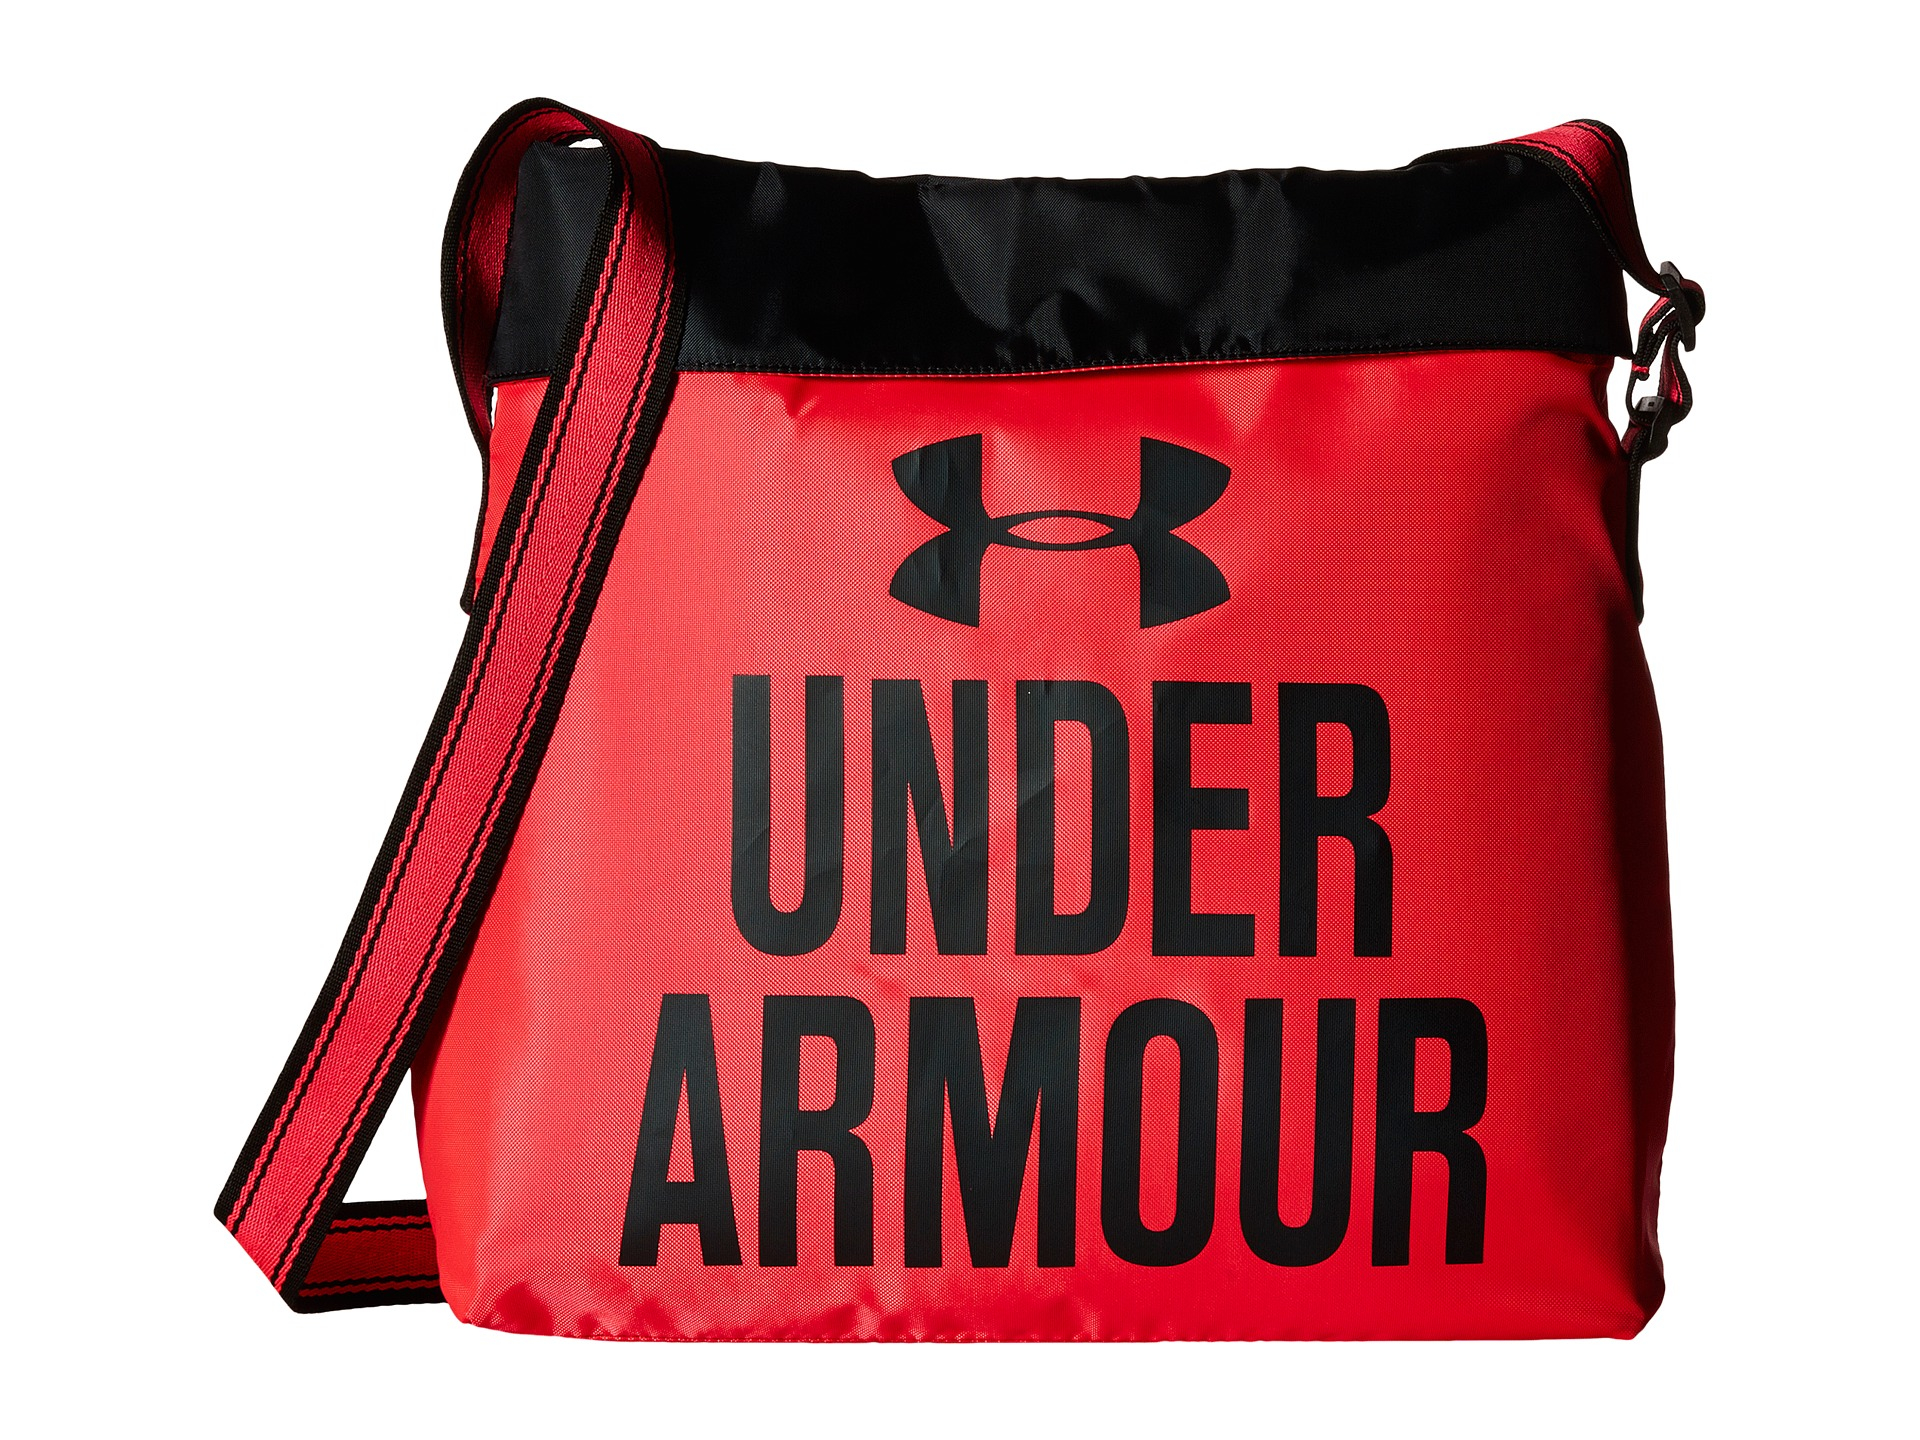 7bd1c76a2d5 Under Armour Ua Armour Crossbody in Red - Lyst